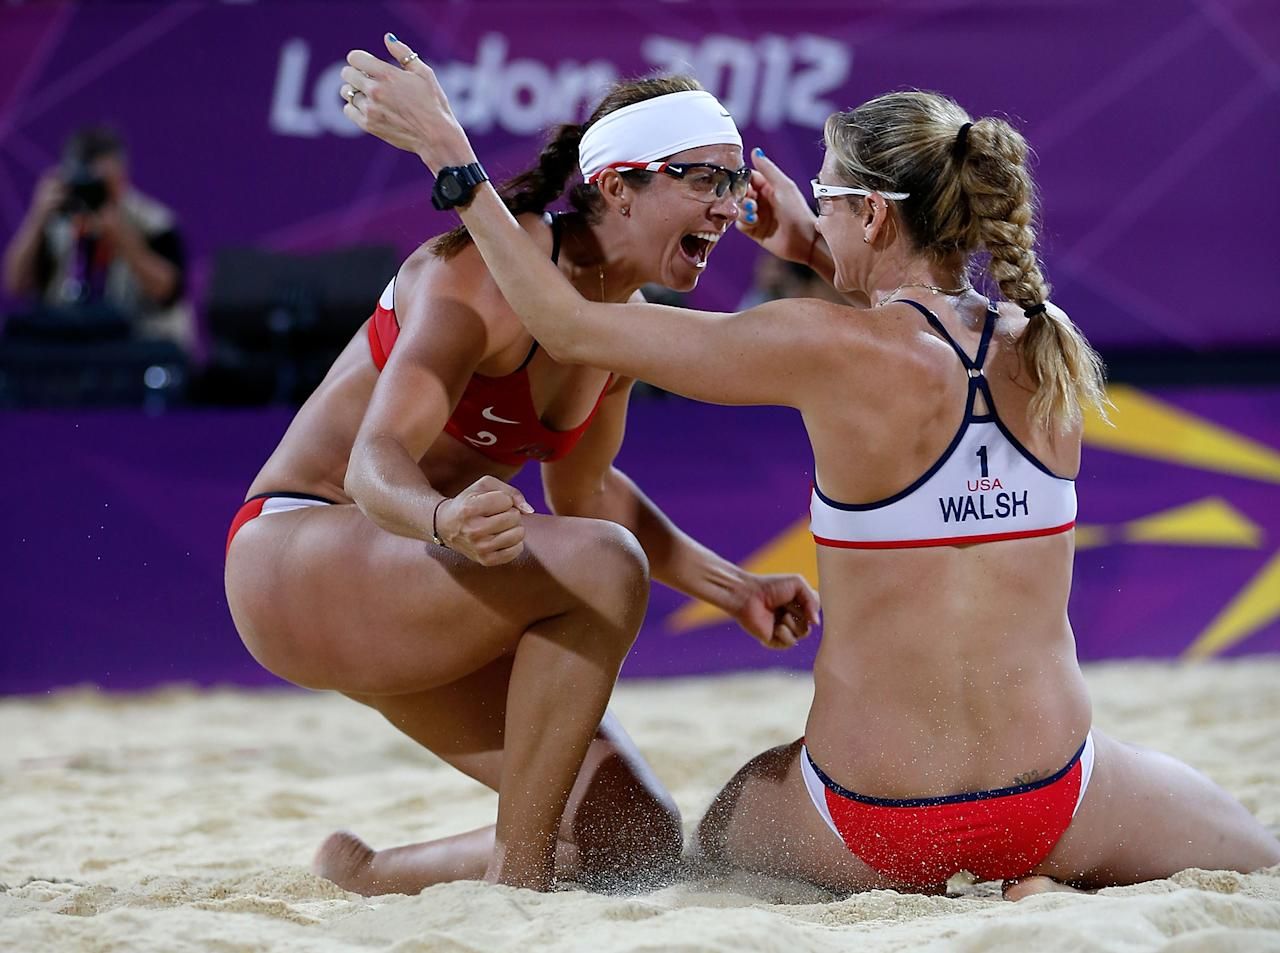 Kerri Walsh Jennings (R) and Misty May-Treanor of the United States celebrate winning the Gold medal in the Women's Beach Volleyball Gold medal match against the United States on Day 12 of the London 2012 Olympic Games at the Horse Guard's Parade on August 8, 2012 in London, England.  (Photo by Jamie Squire/Getty Images)